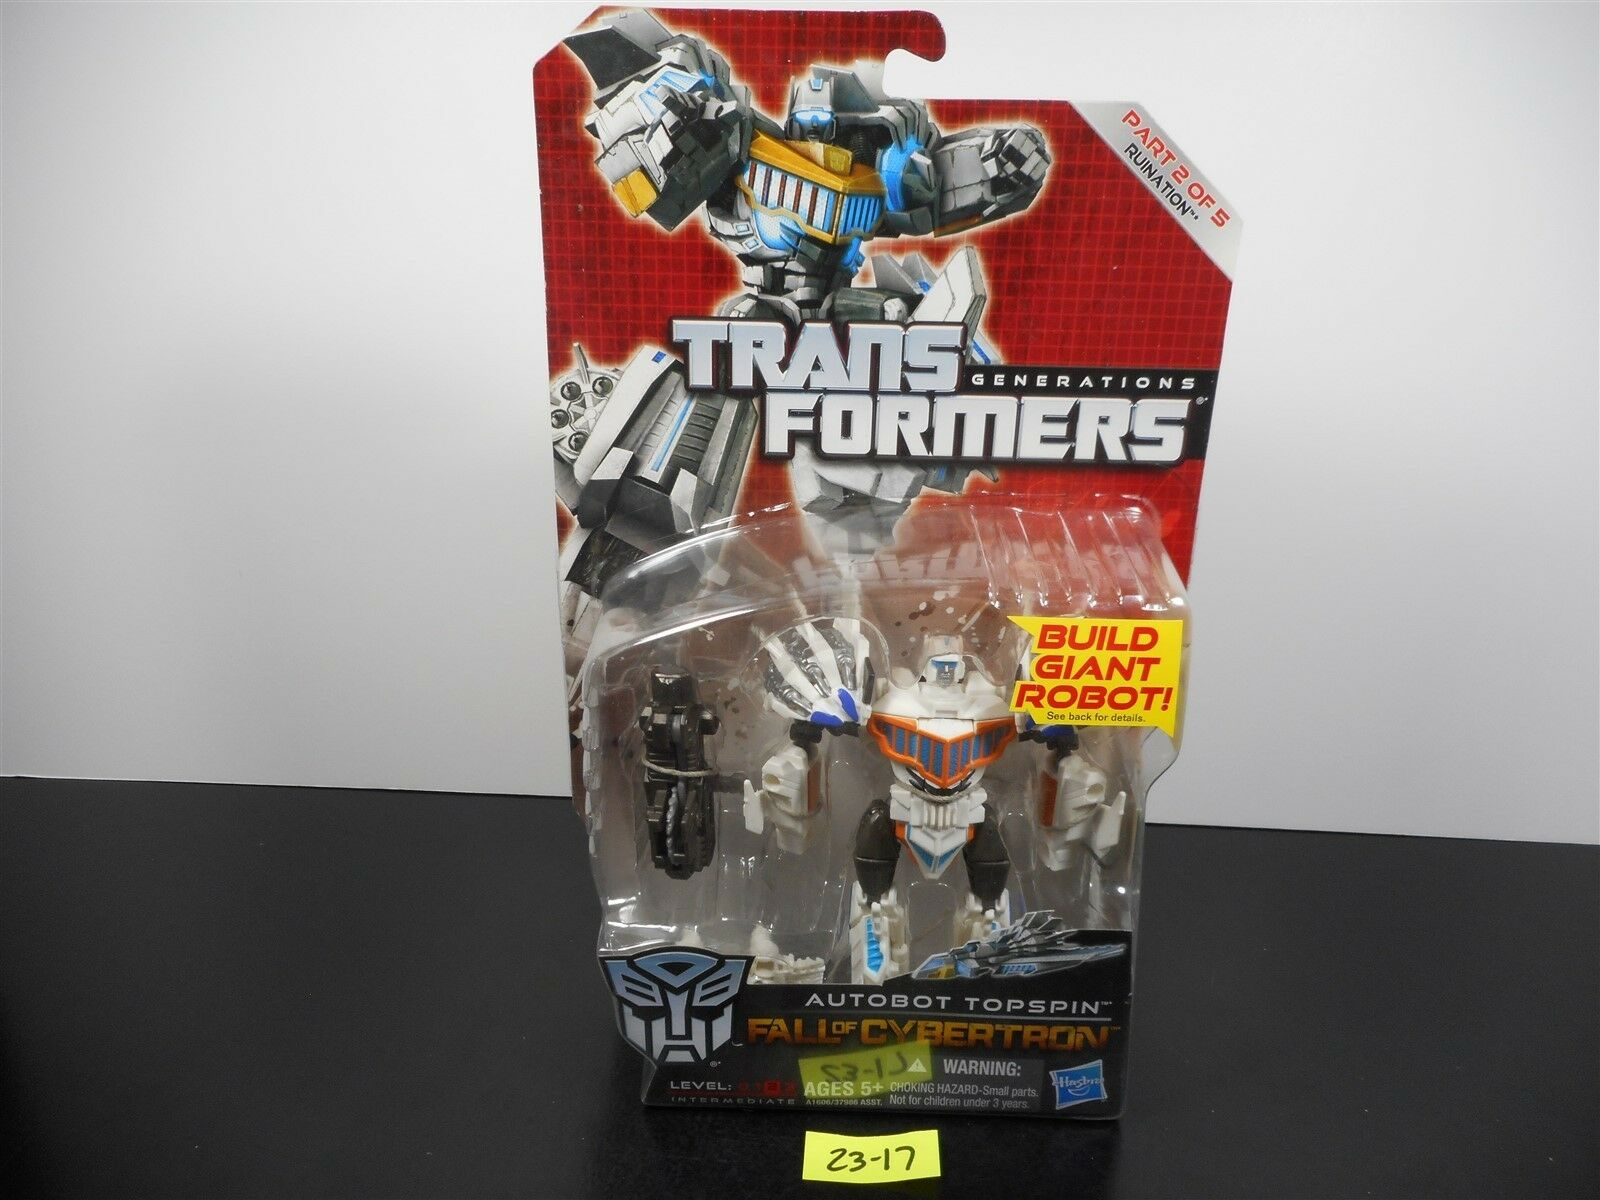 NEW & SEALED  Transformers Générations FOC AUTOBOT TOPSPIN ruine 2 5 2317